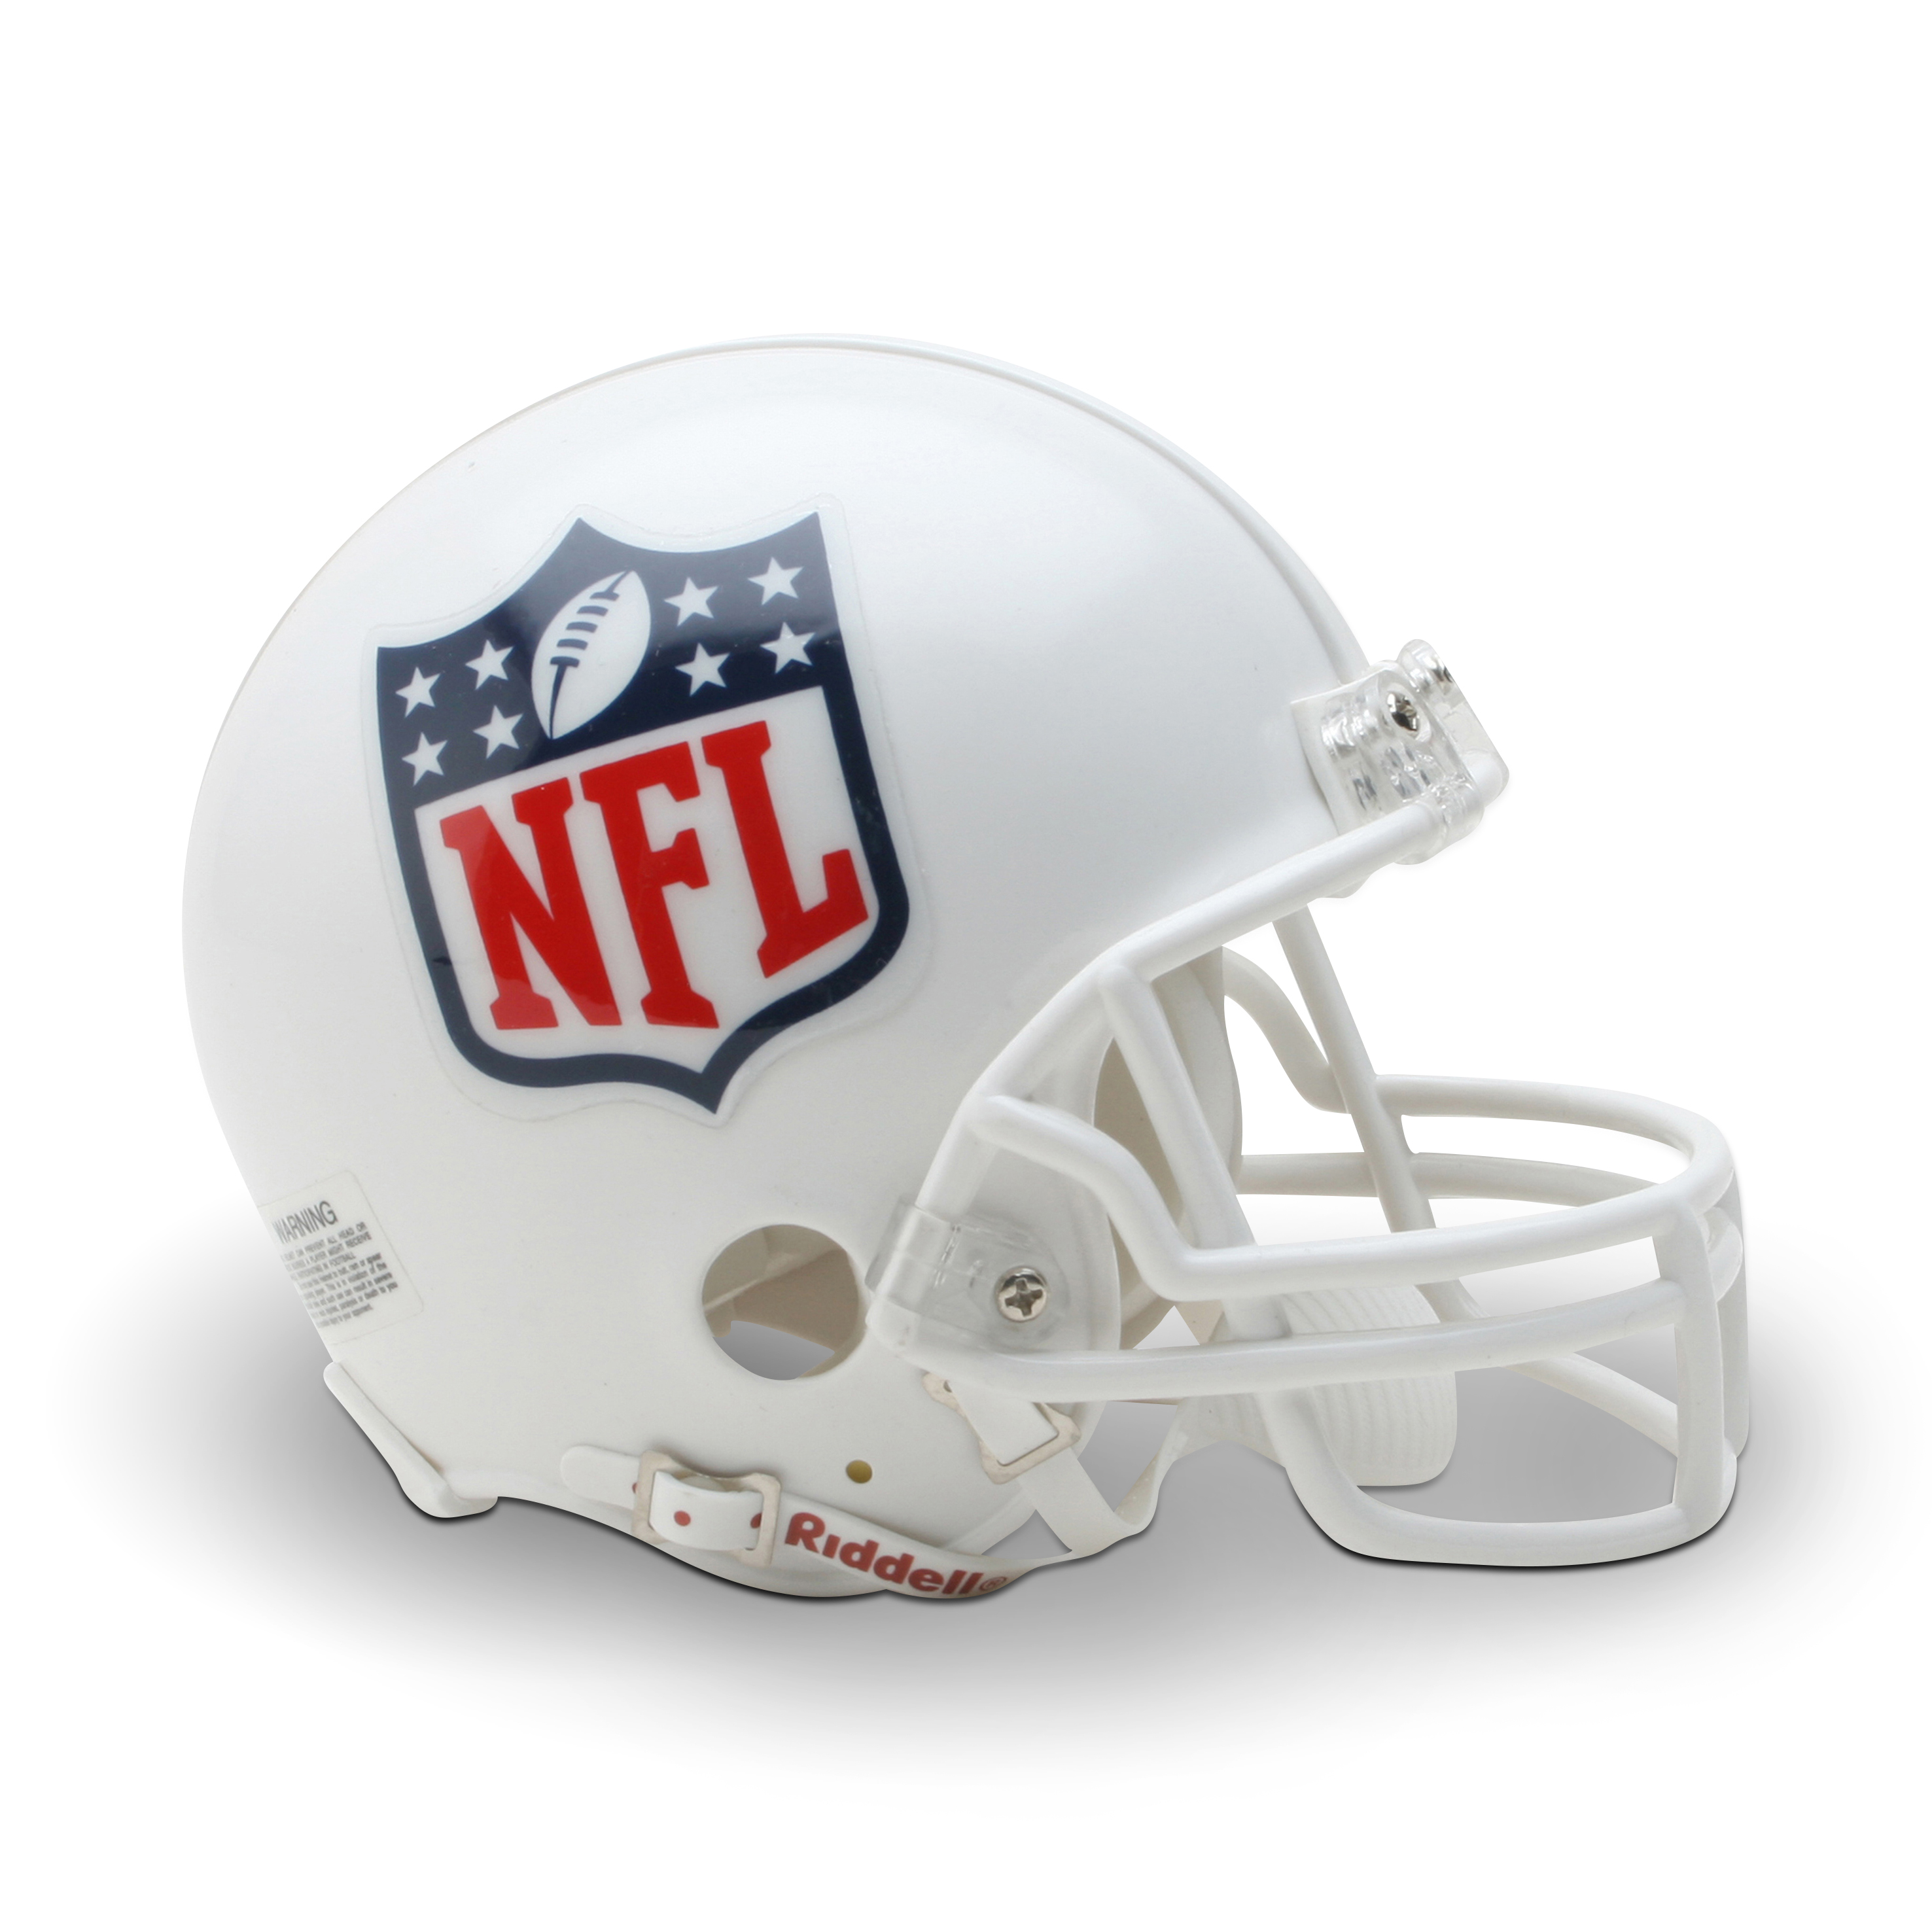 NFL Shield VSR4 Mini Helmet